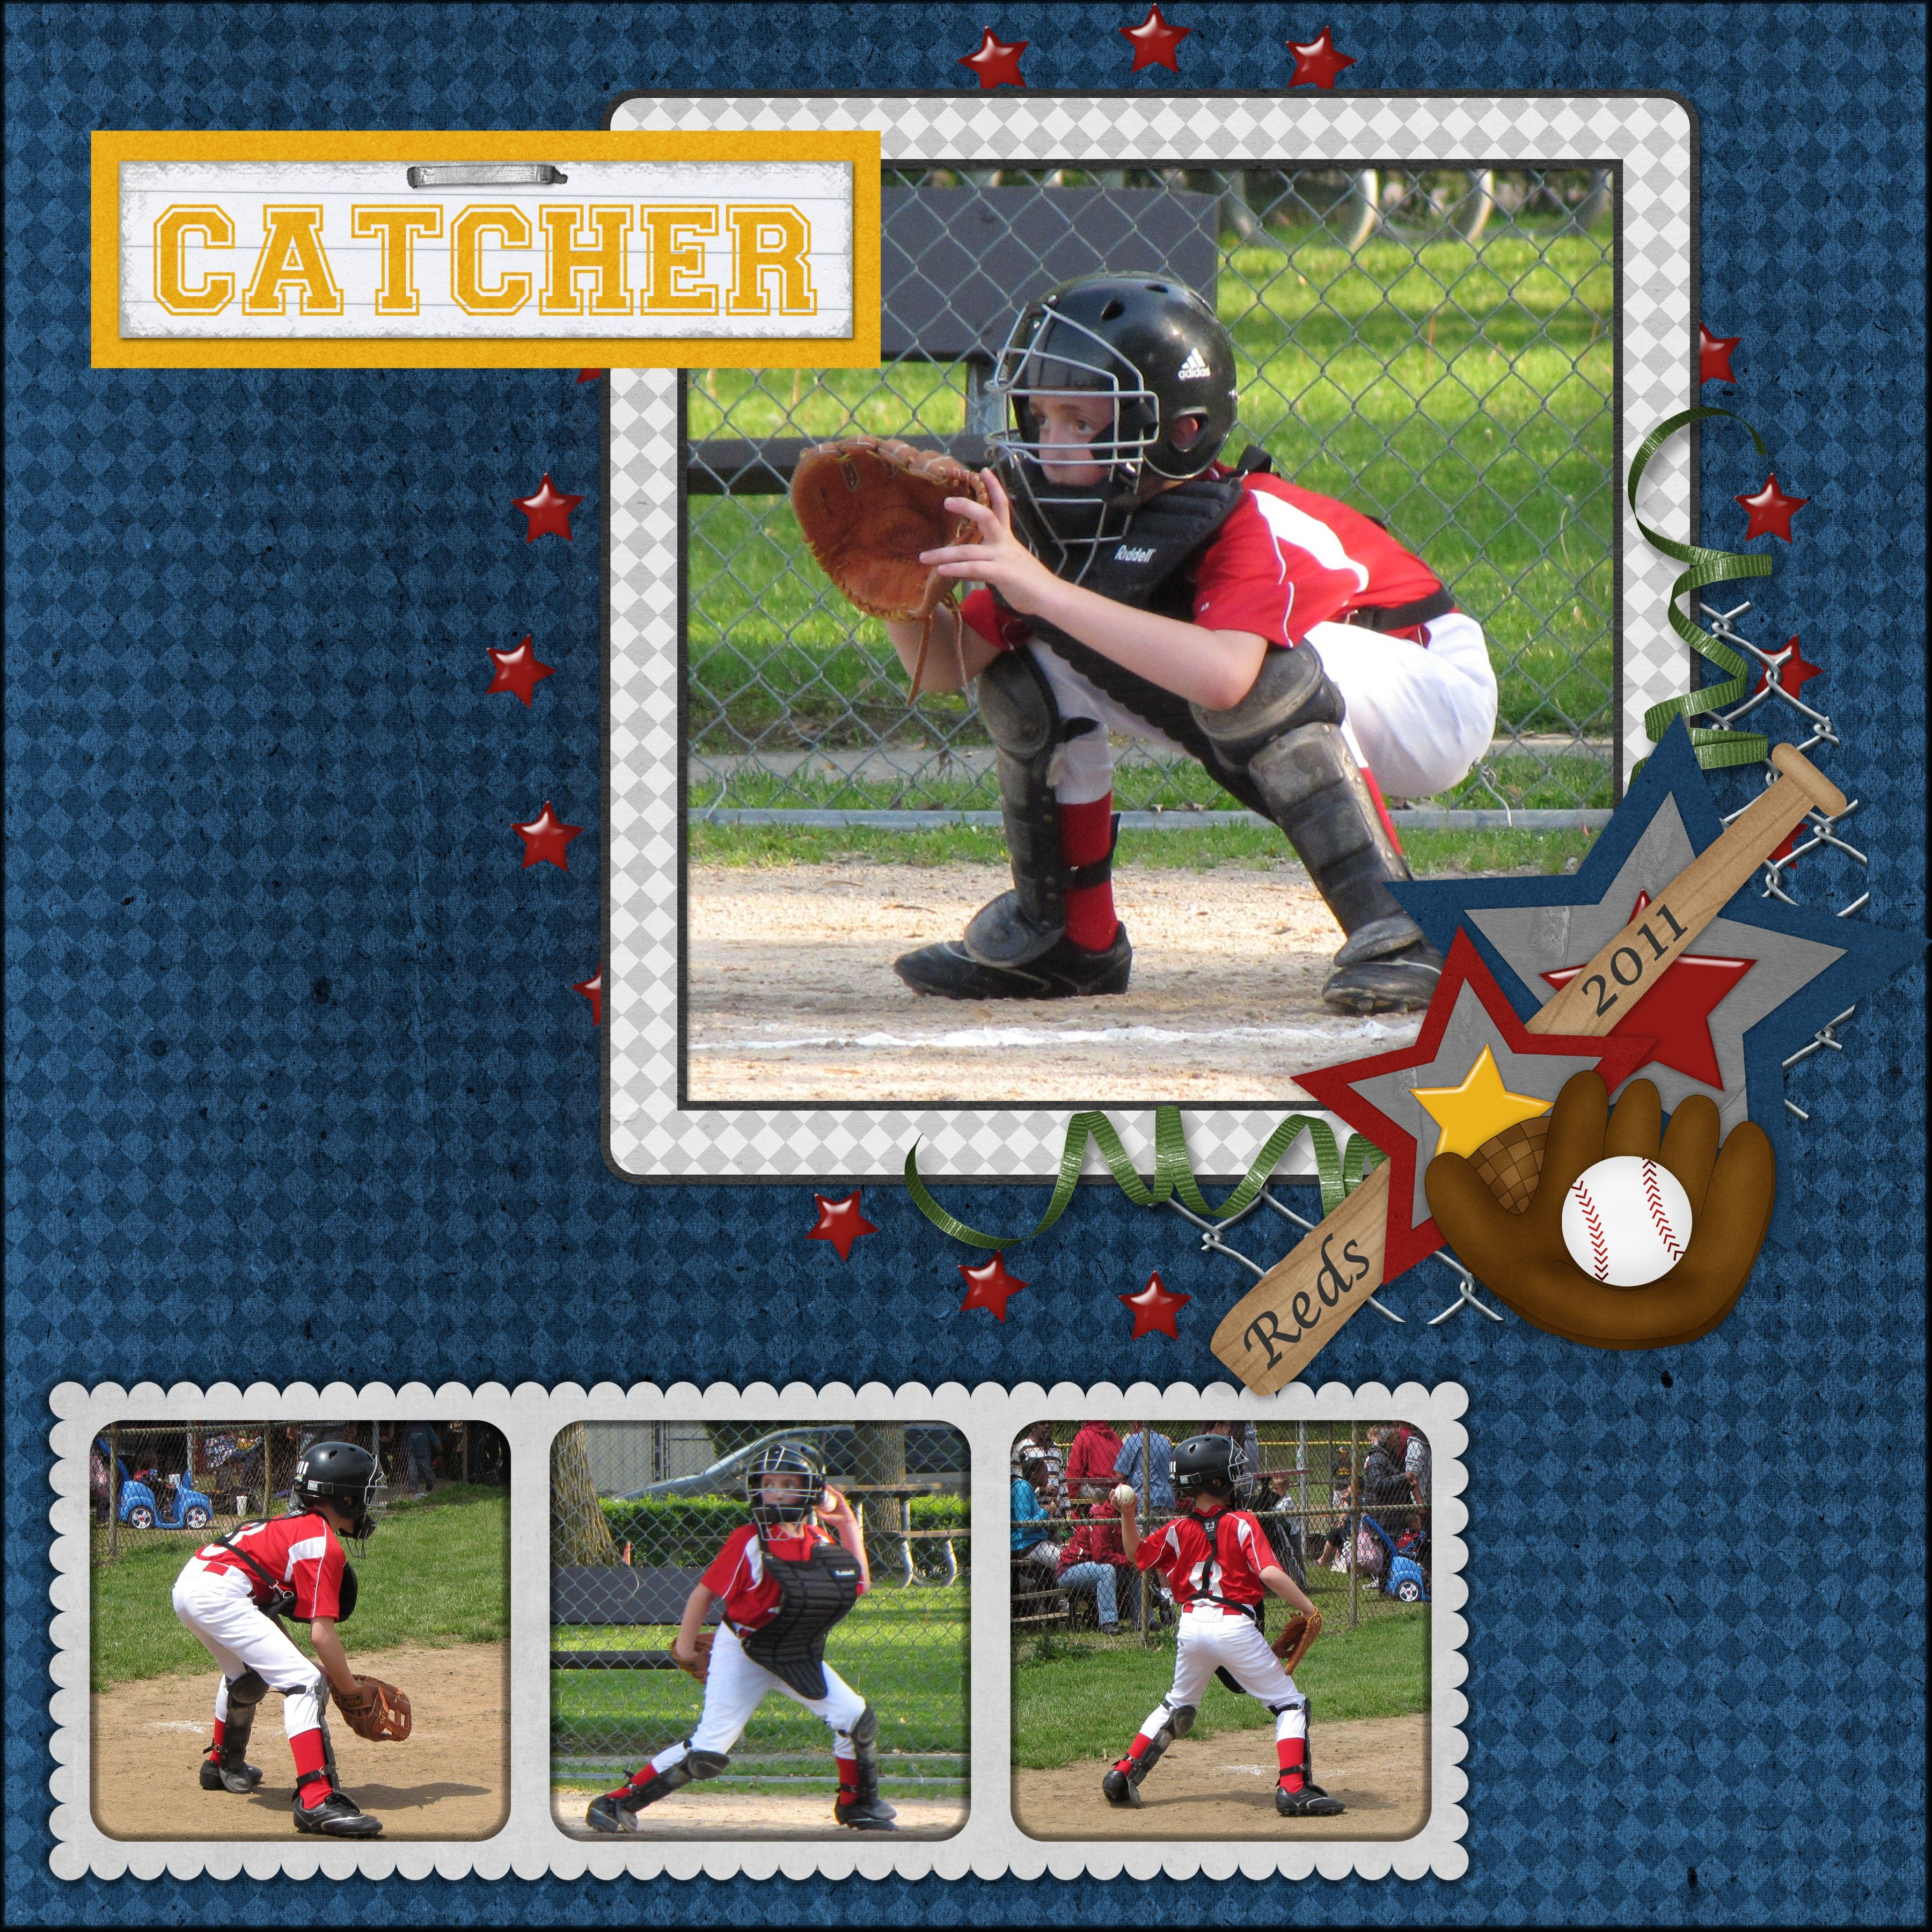 Catcher (With images) Baseball cards, Catcher, Digital